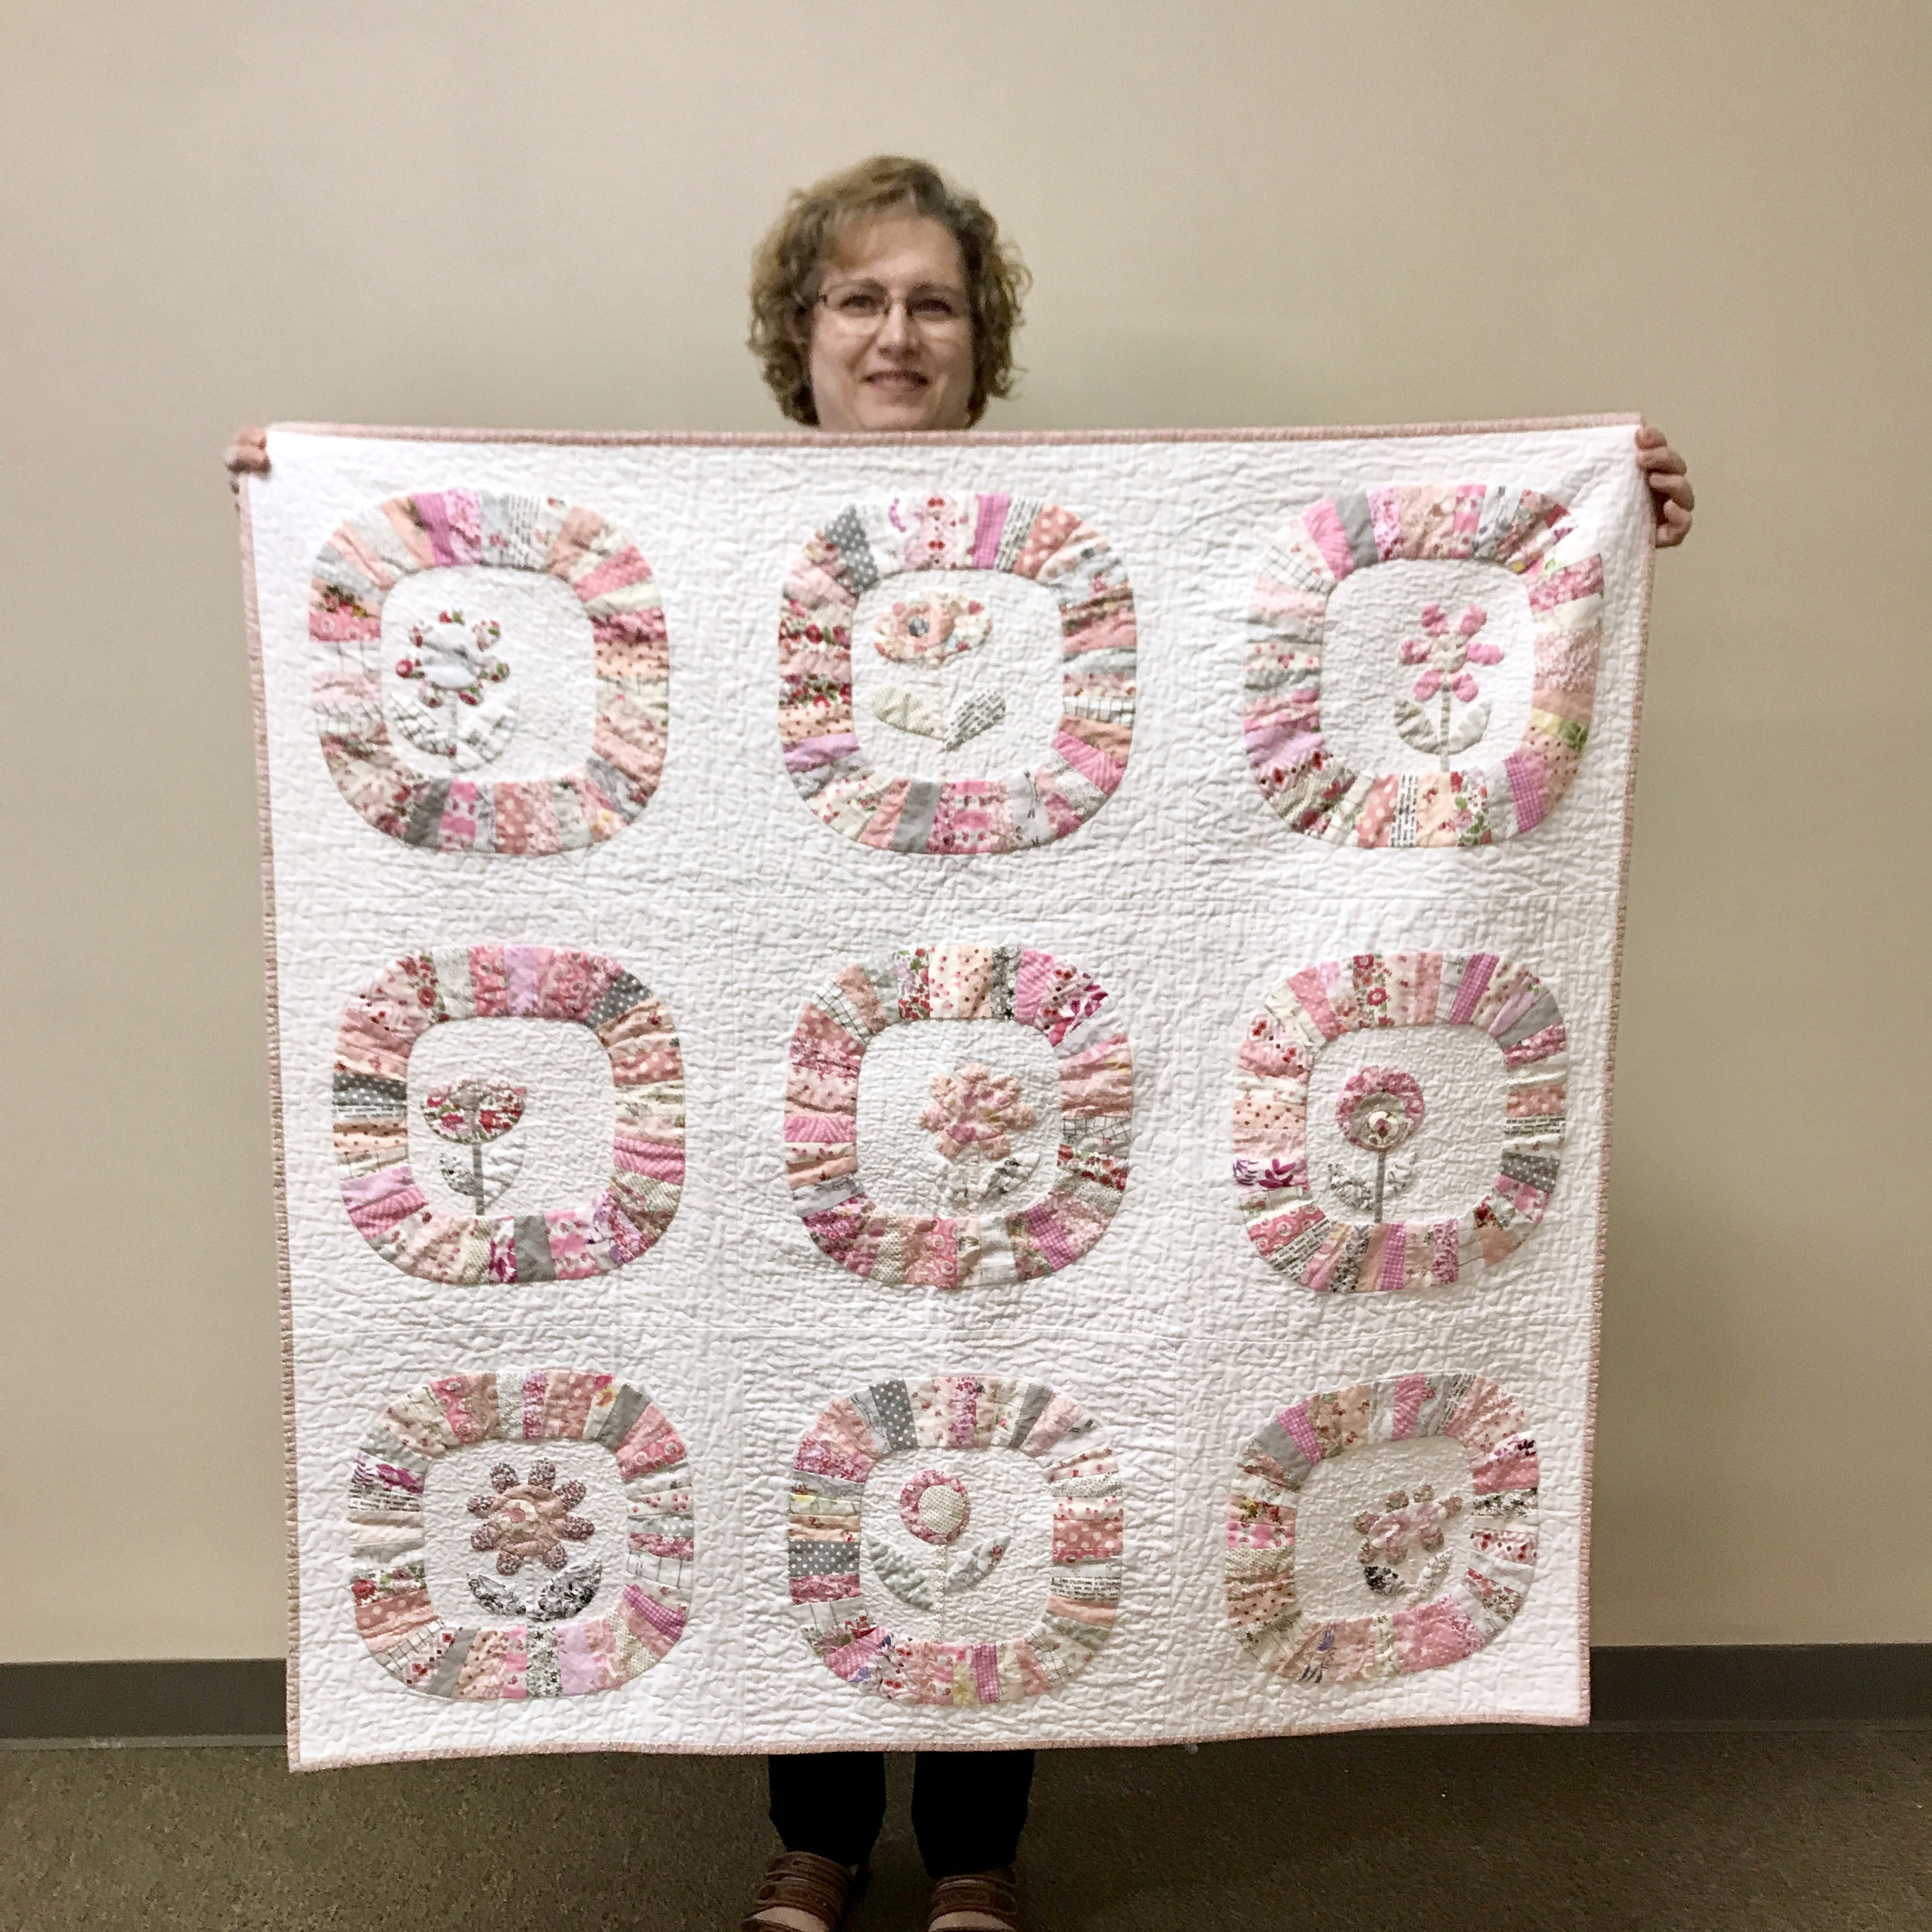 Quilt by Debbie Thompson